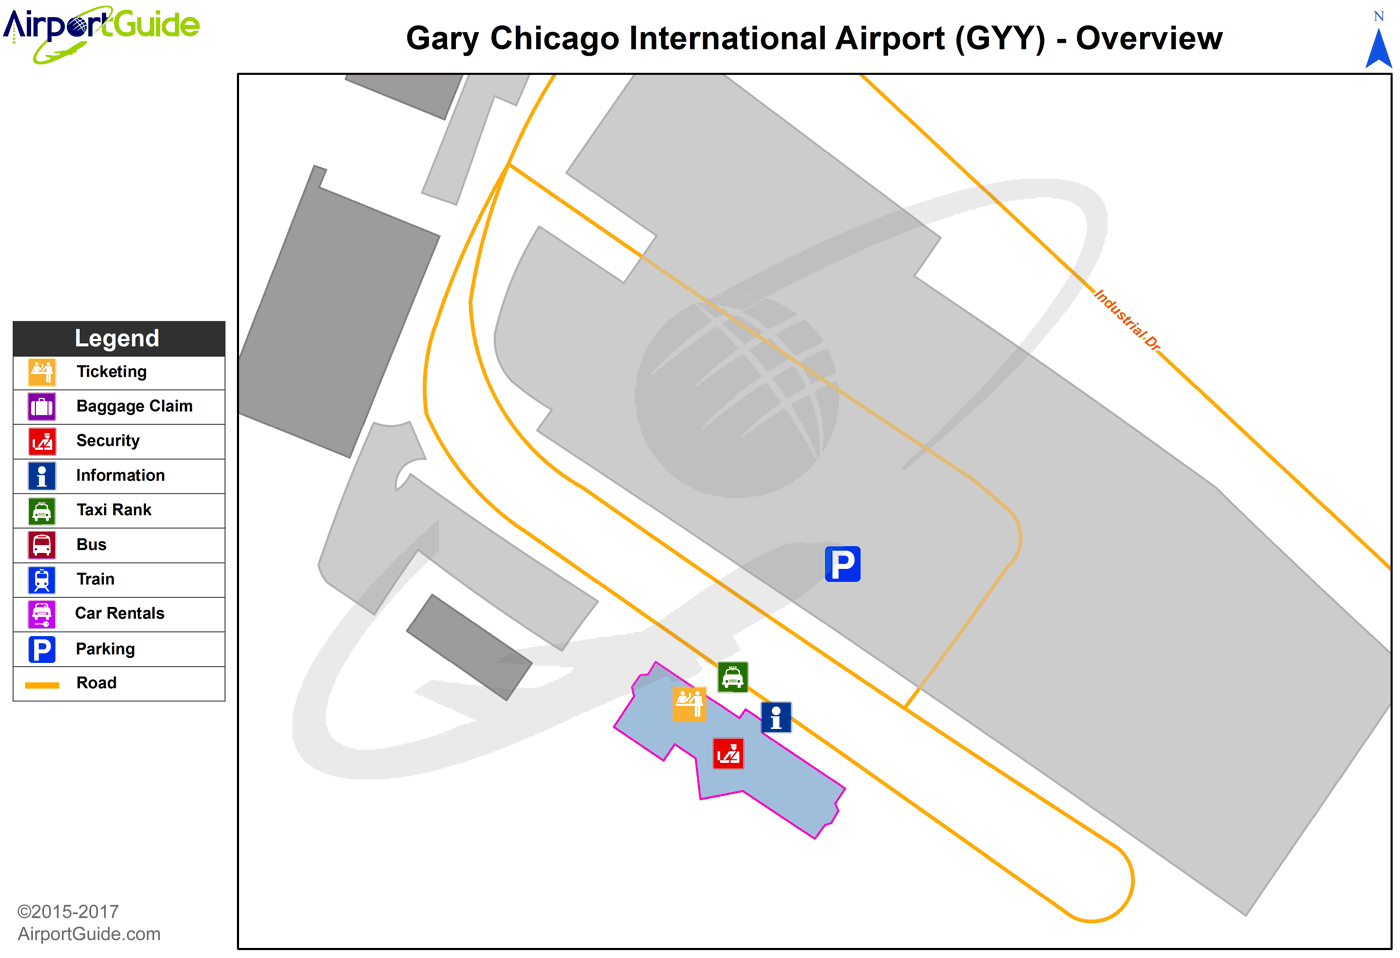 Gary - Gary/Chicago International (GYY) Airport Terminal Map - Overview